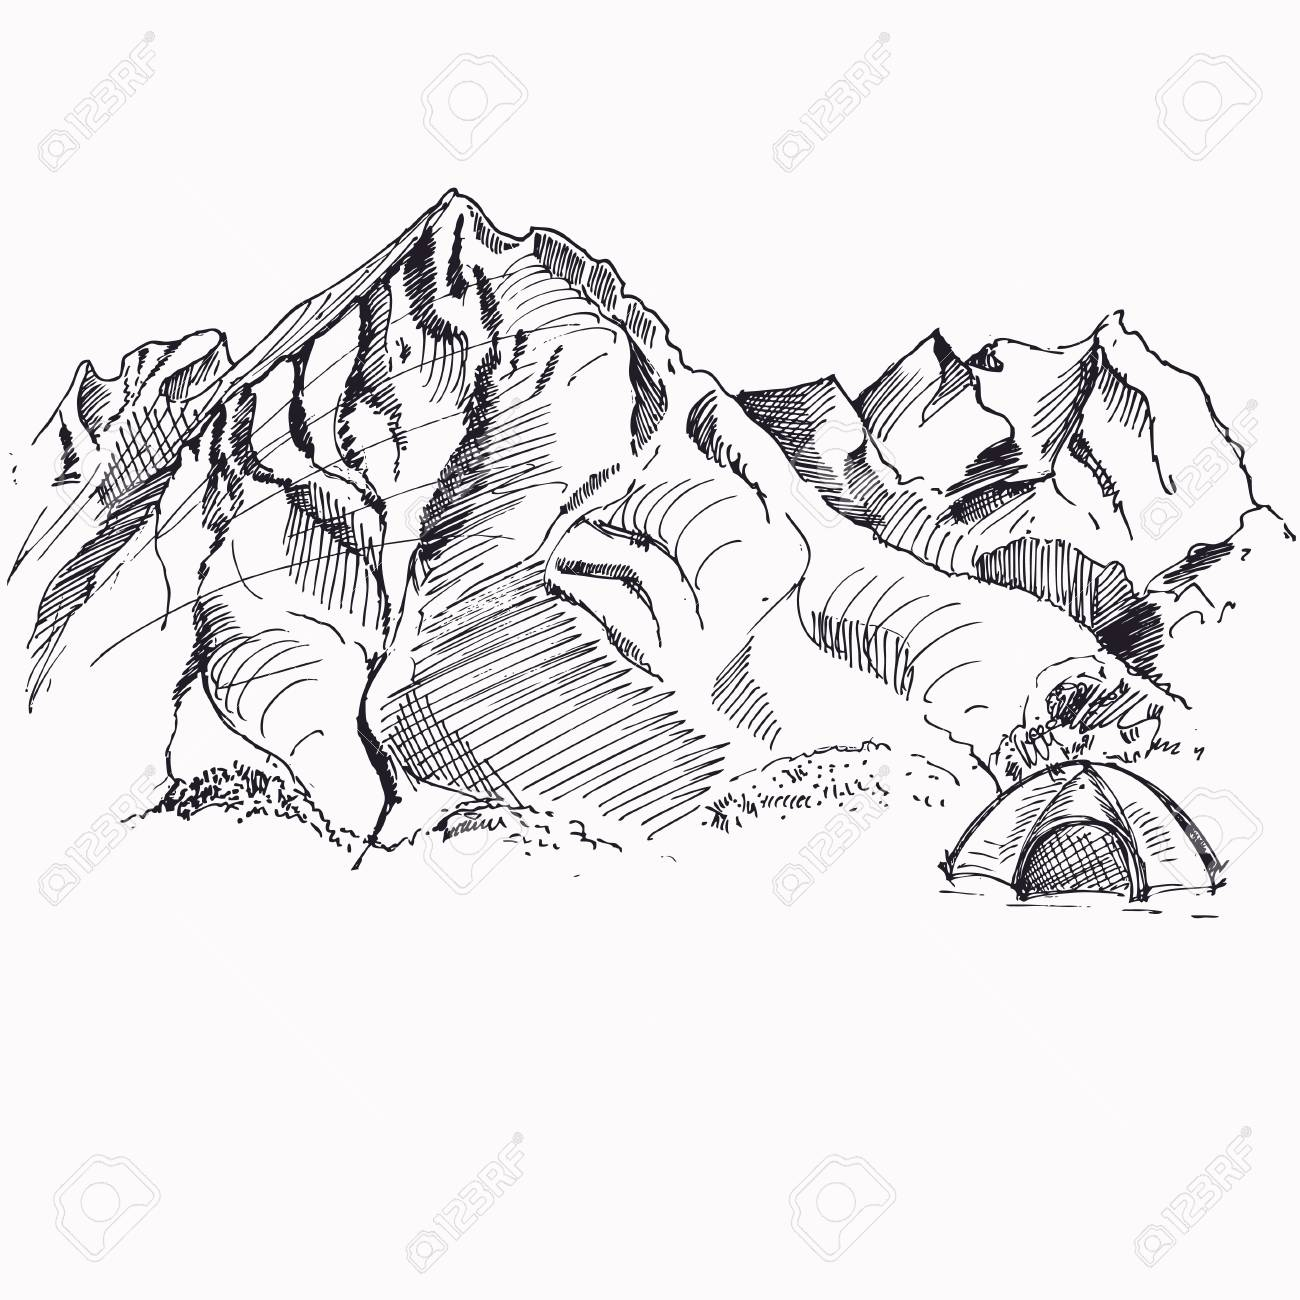 1300x1300 Landscape With Tent And Mountains. Sketch. Royalty Free Cliparts